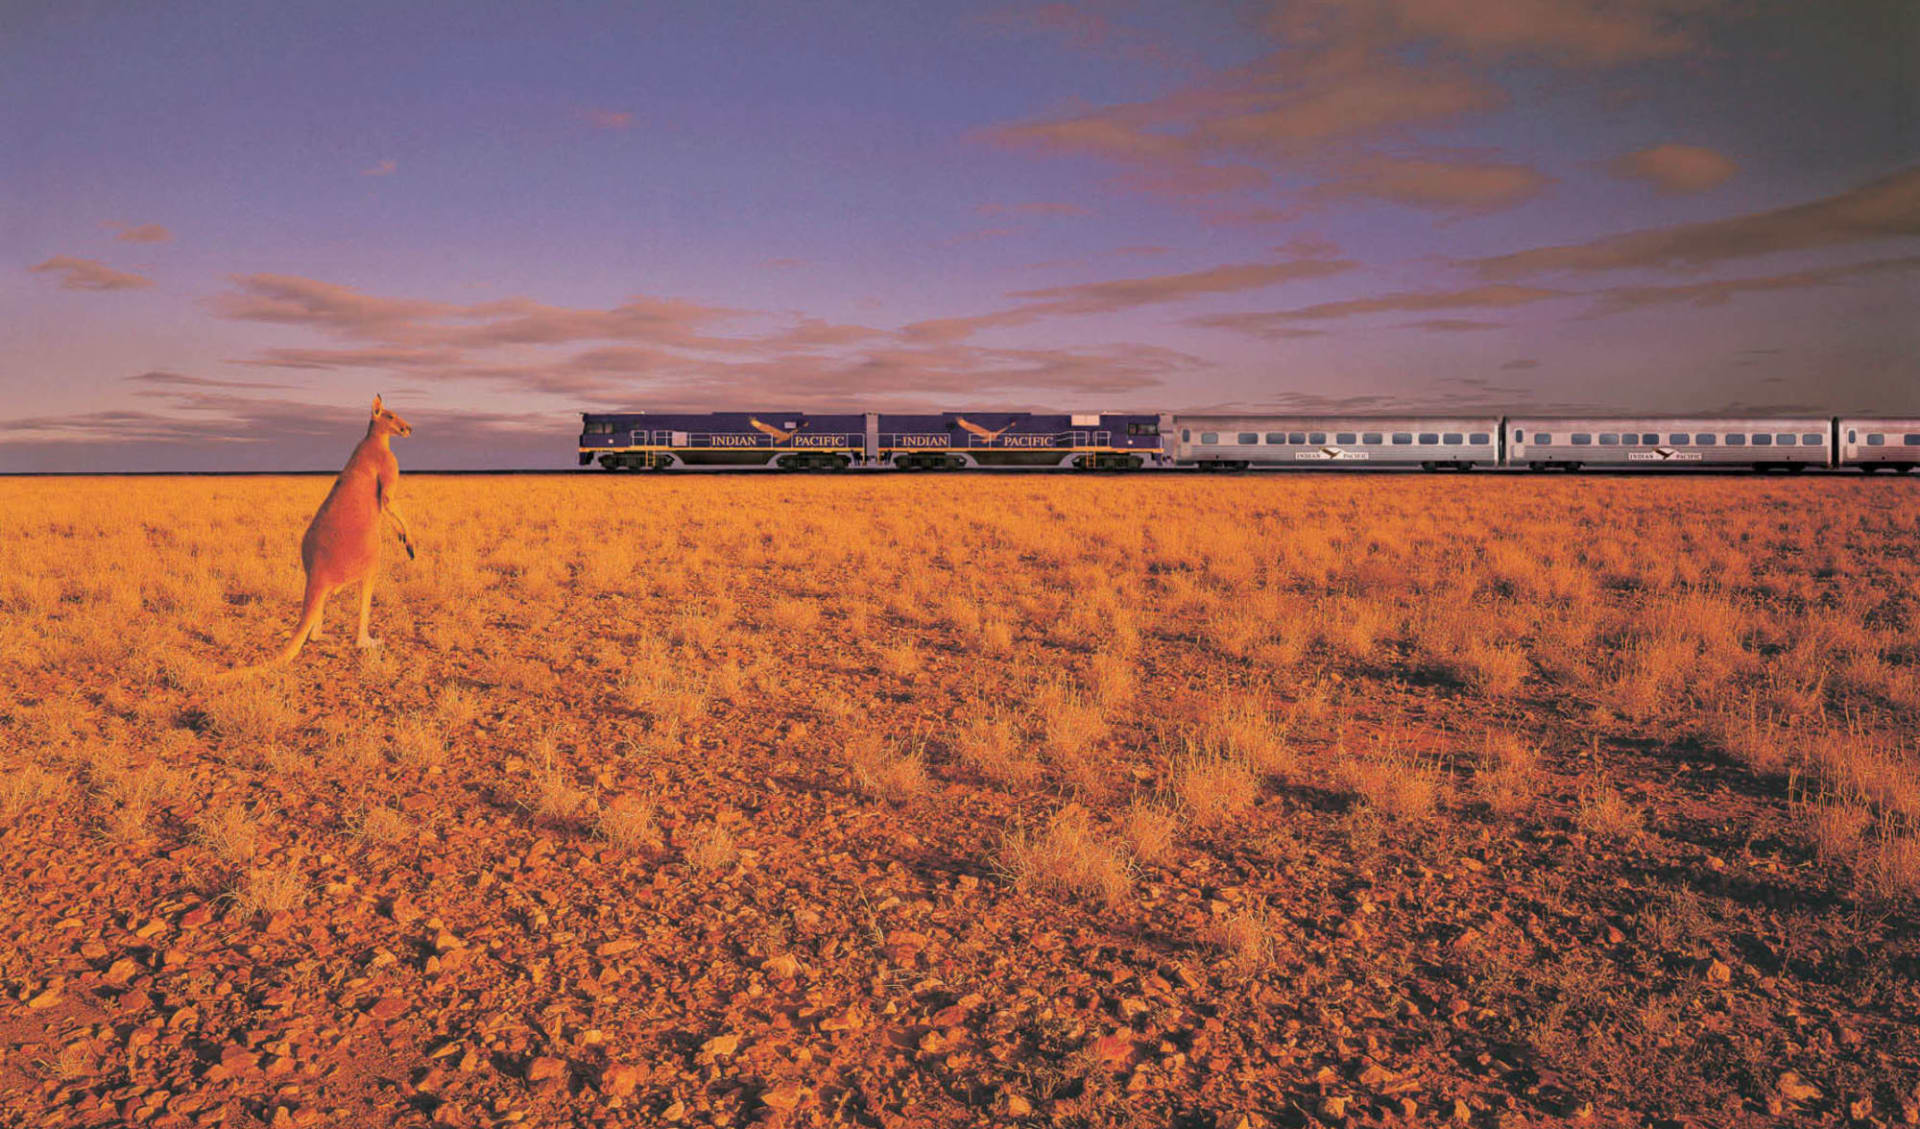 Indian Pacific von Perth nach Adelaide: Australien - Bahnreisen - Indian Pacific mit Känguruh